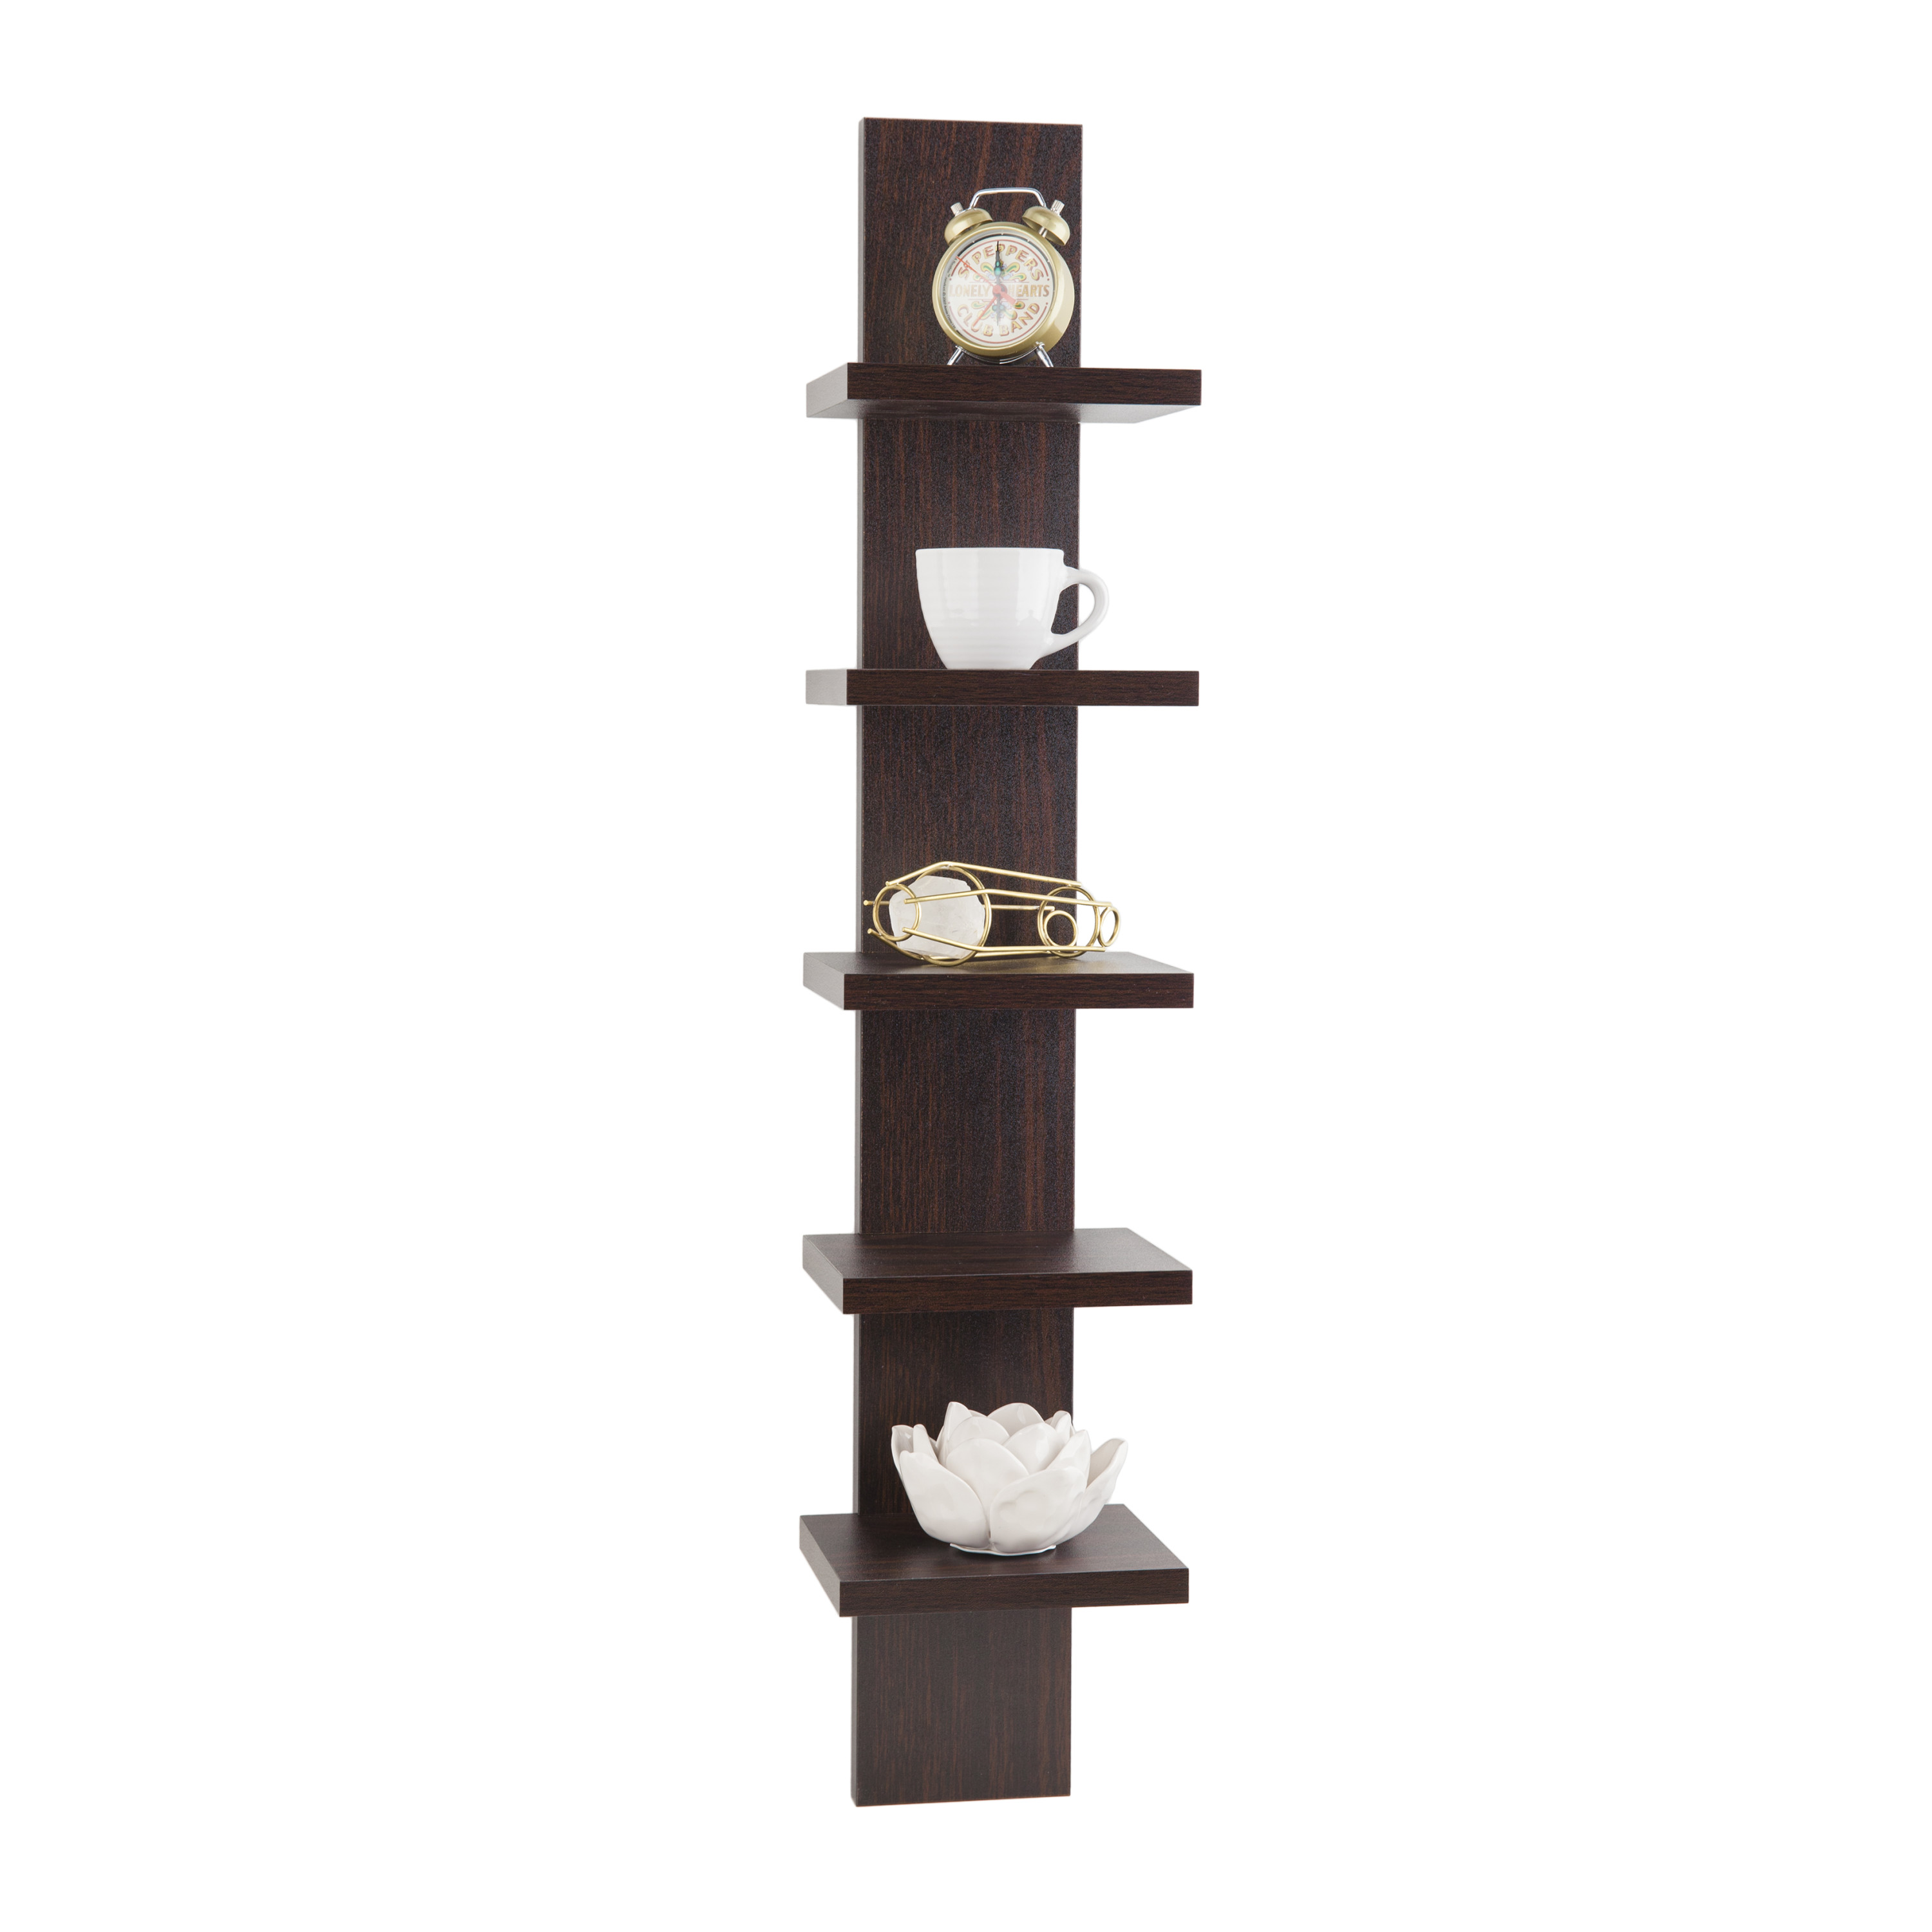 Danya B. Utility Column Spine Wall Shelves